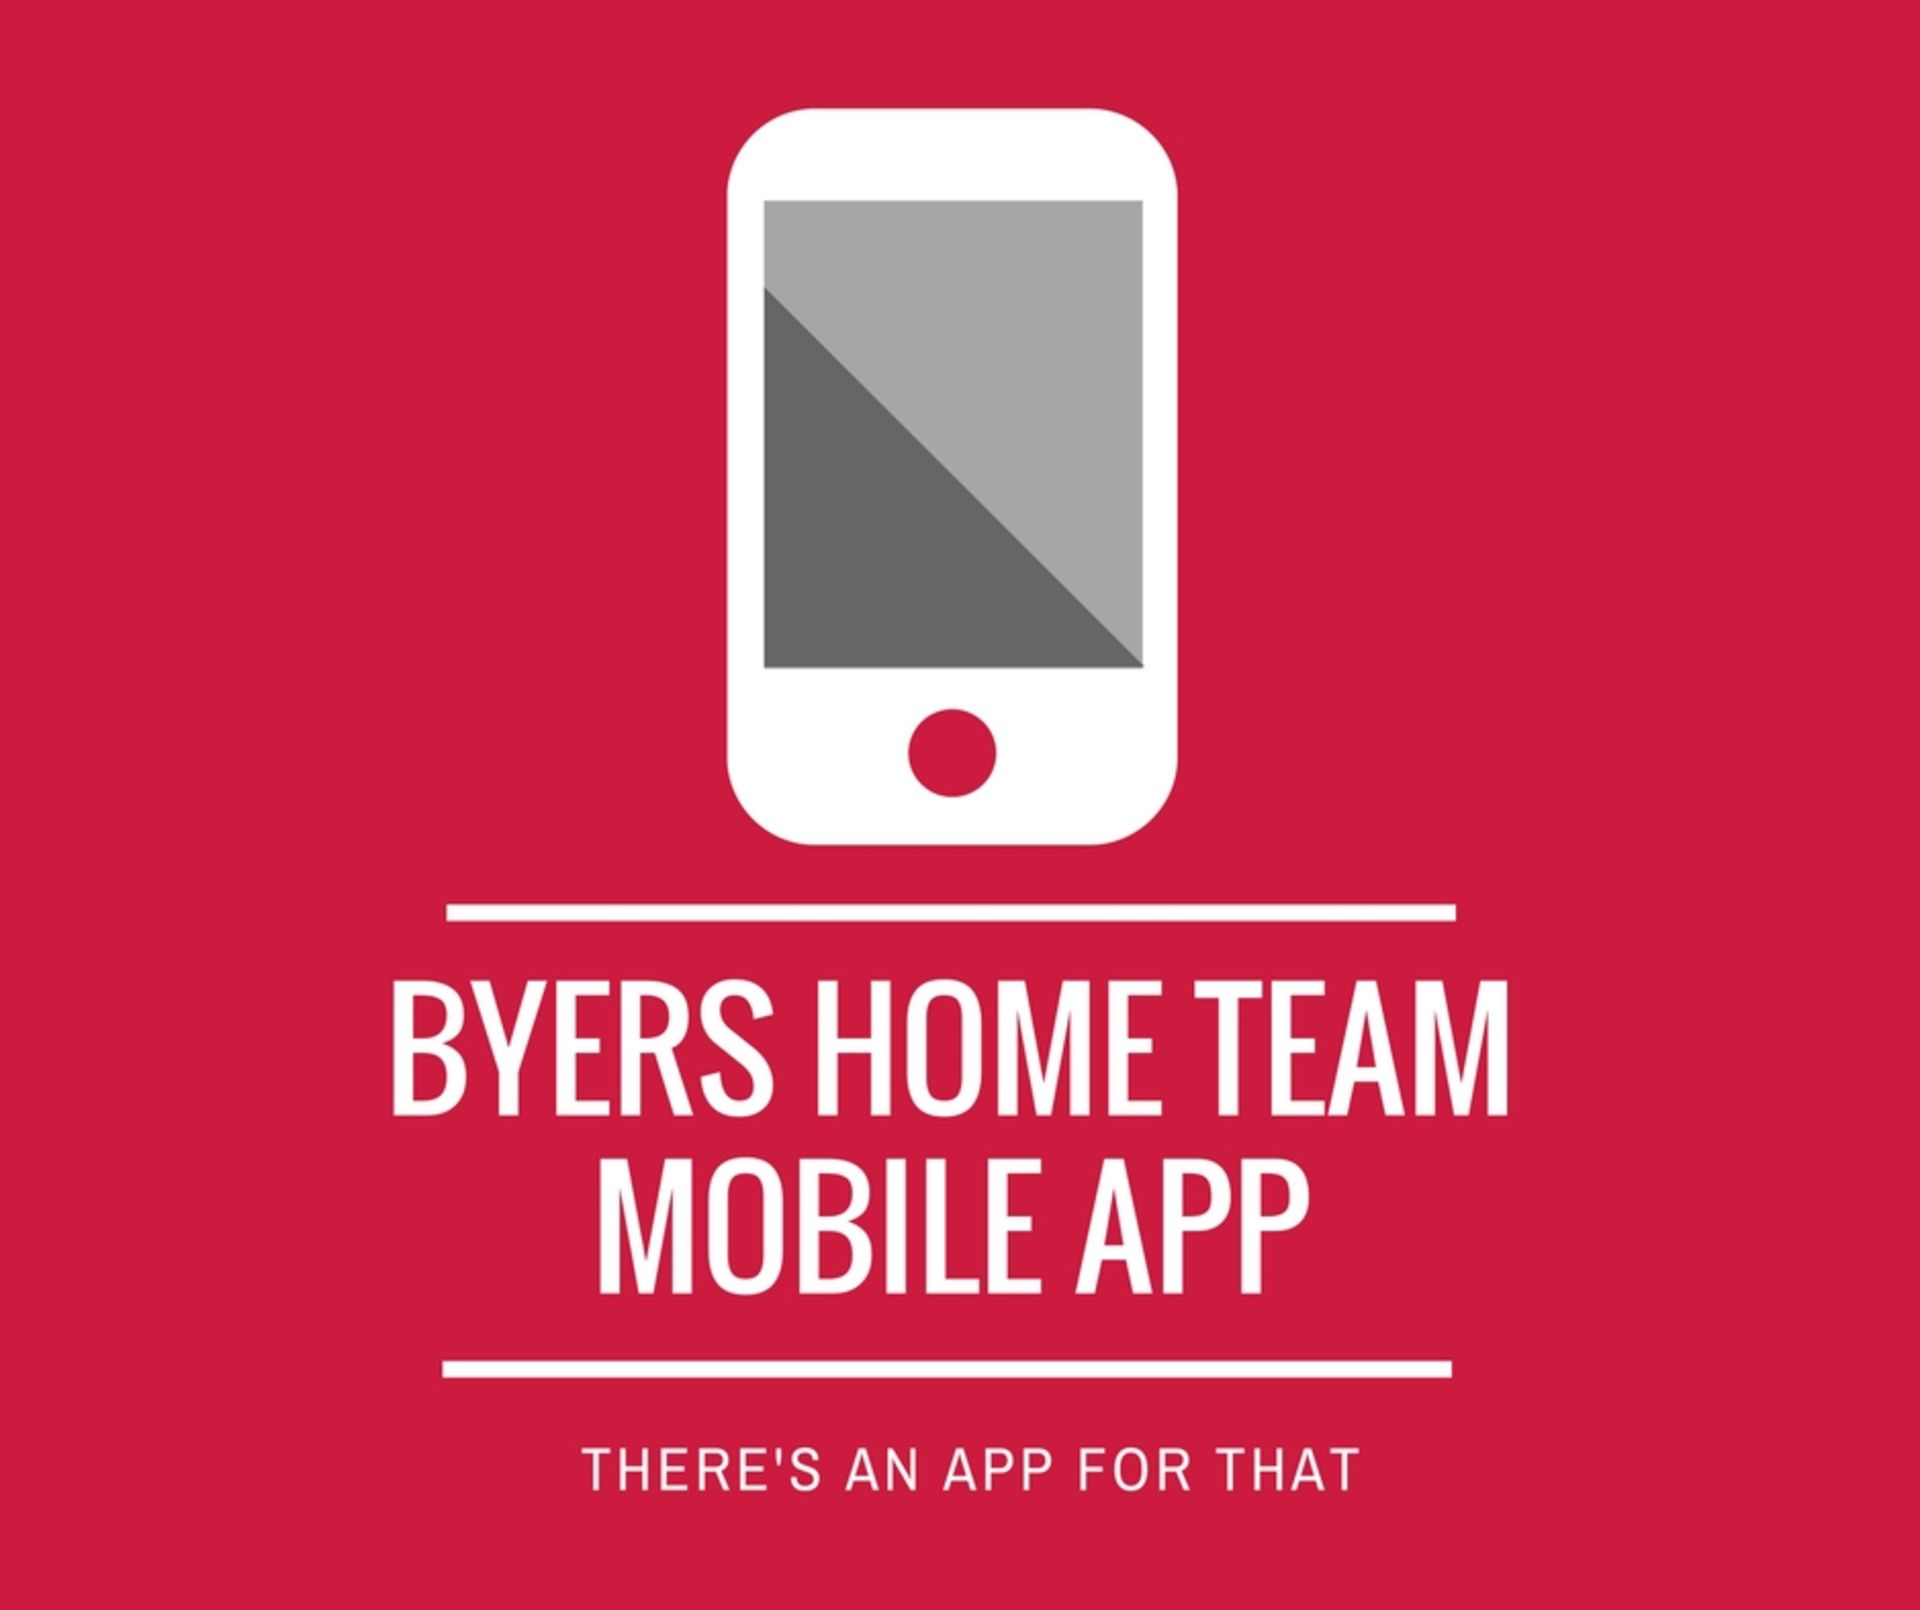 Download the Byers Home Team Mobile App